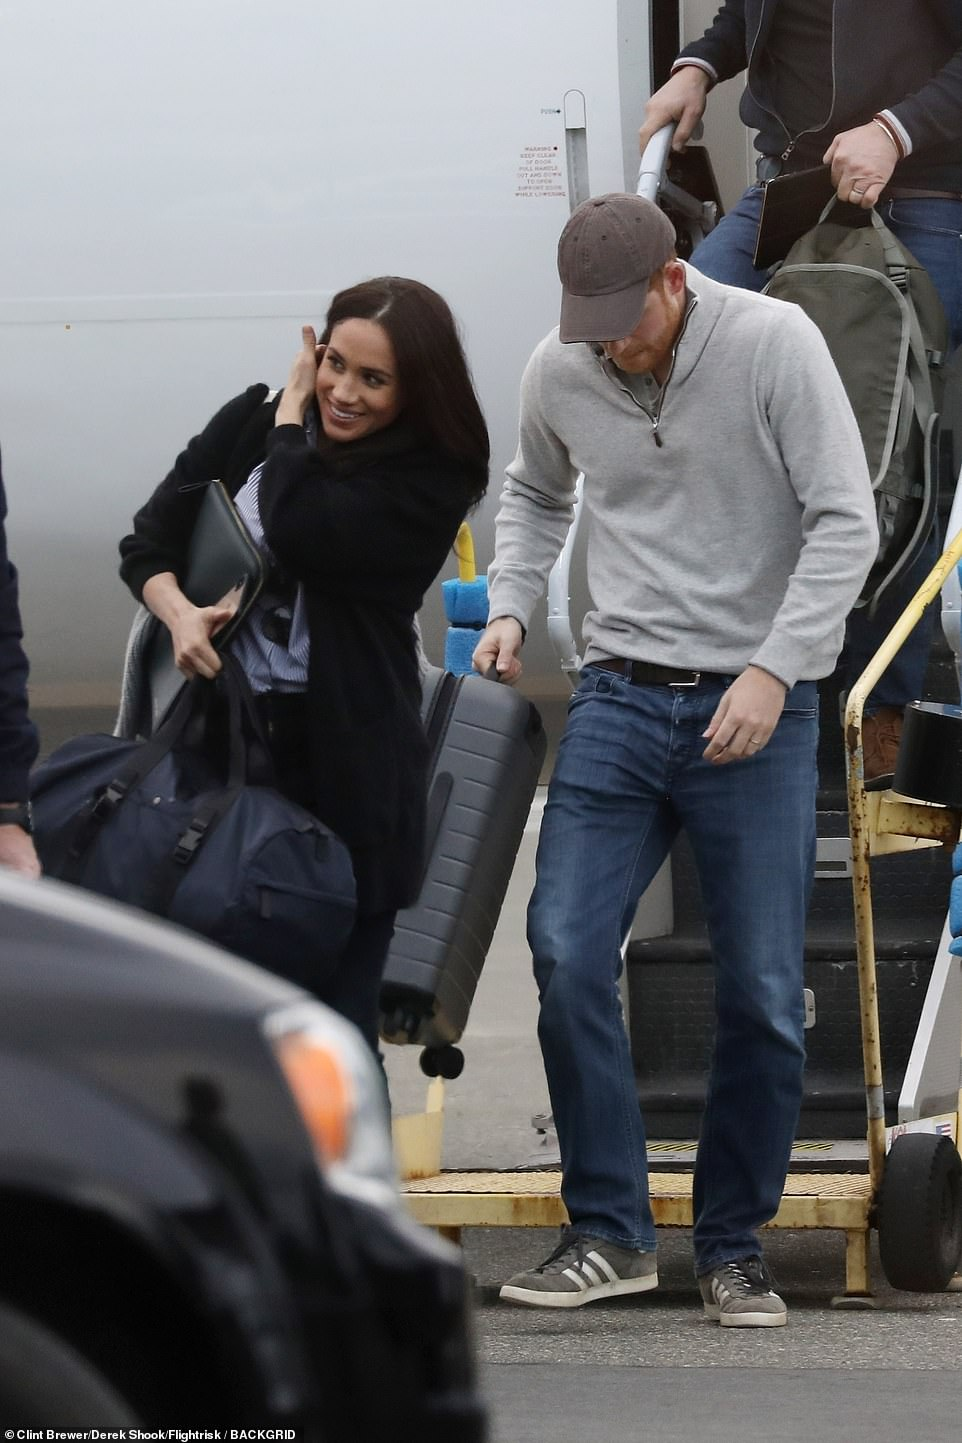 In a departure from their Royal ways, Harry and Meghan carried their own cabin bags off the commercial flight. The couple have previously been slammed for preaching about saving the planet, and then flying around the world by private jet